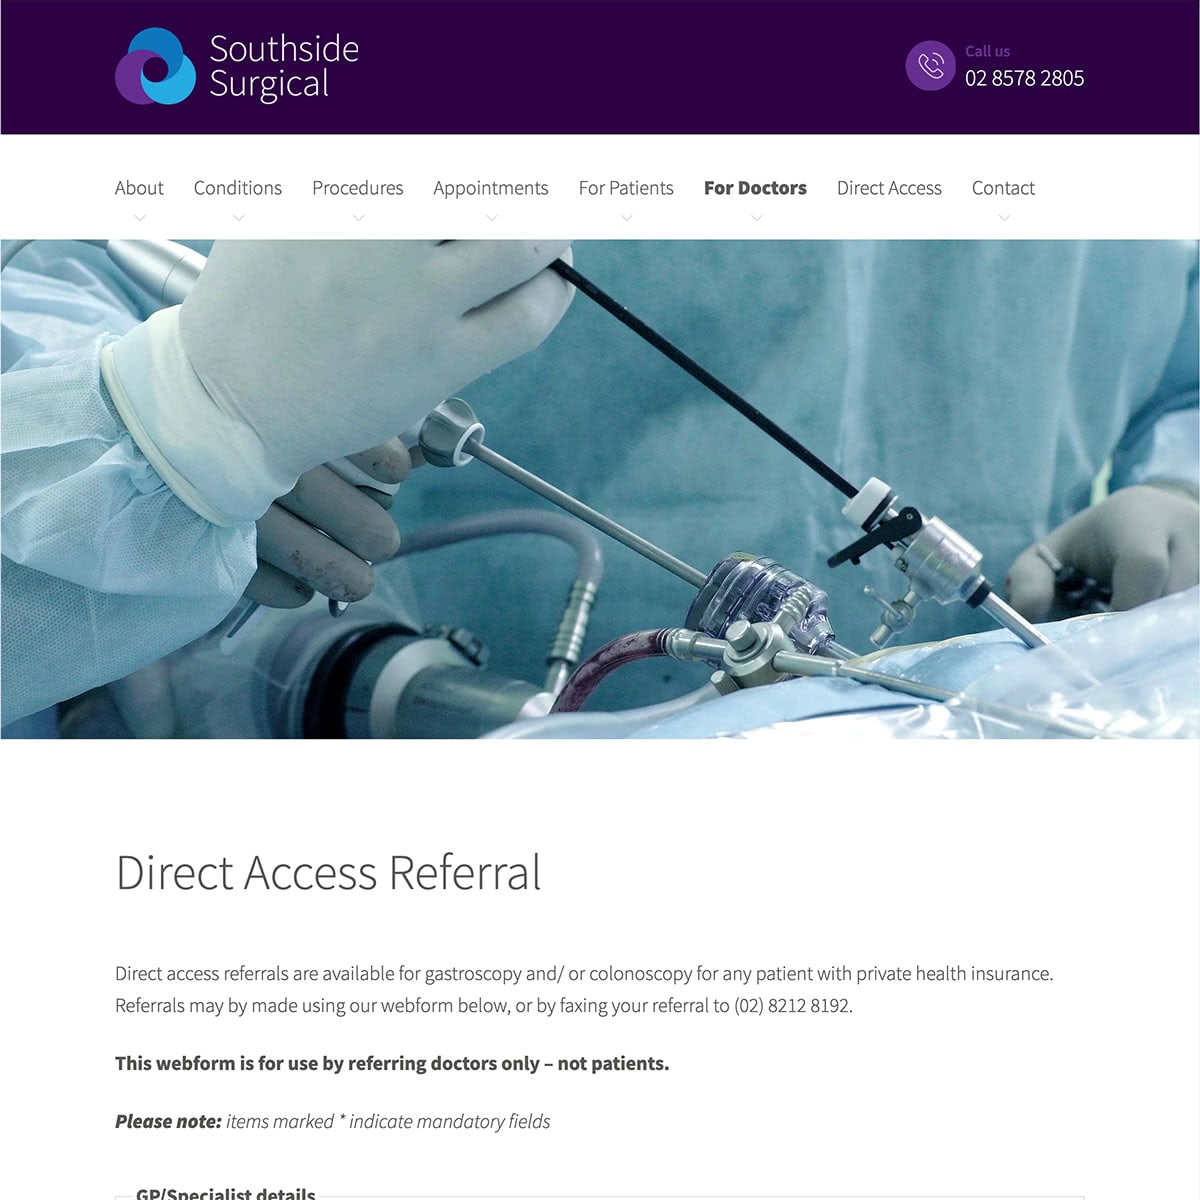 Southside Surgical - For Doctors